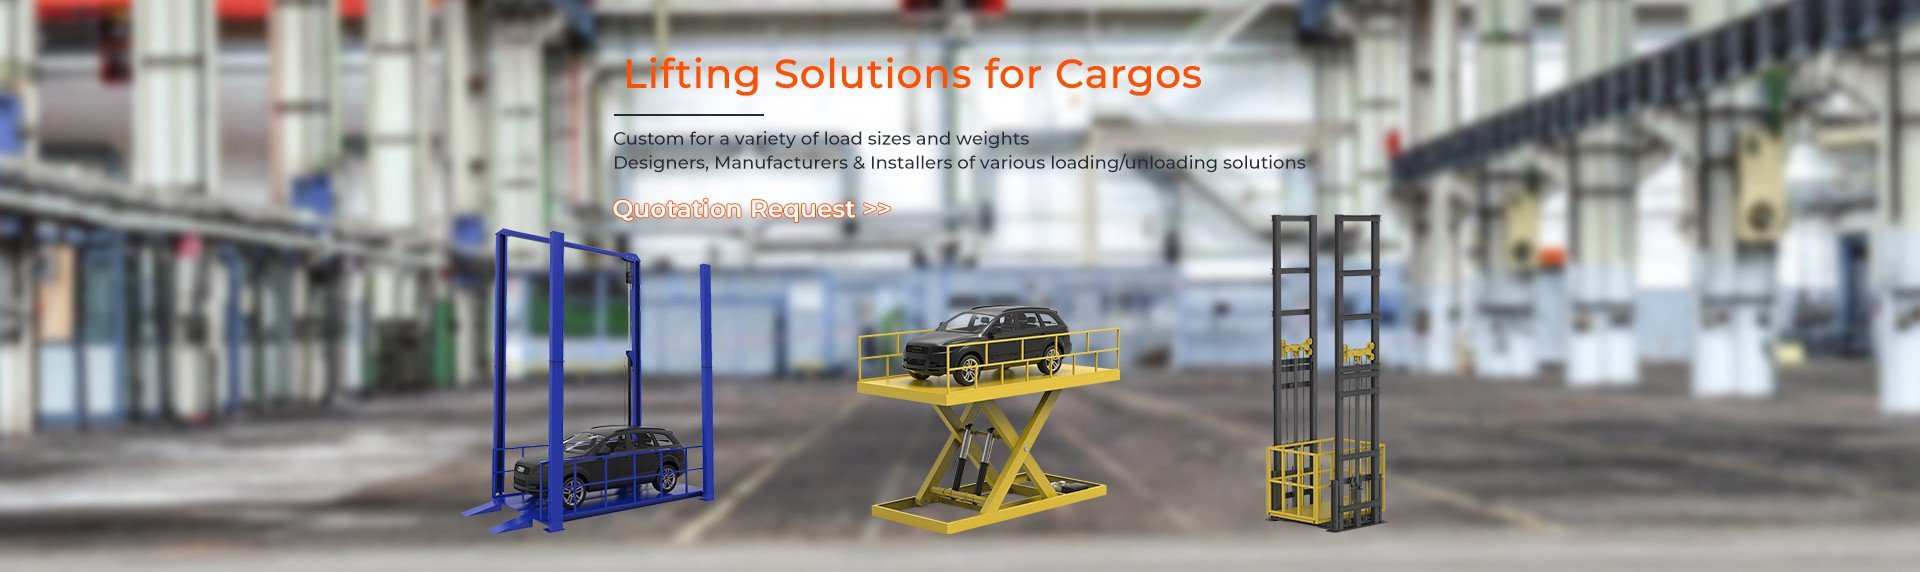 banner1 Lifting Solutions for Cargos